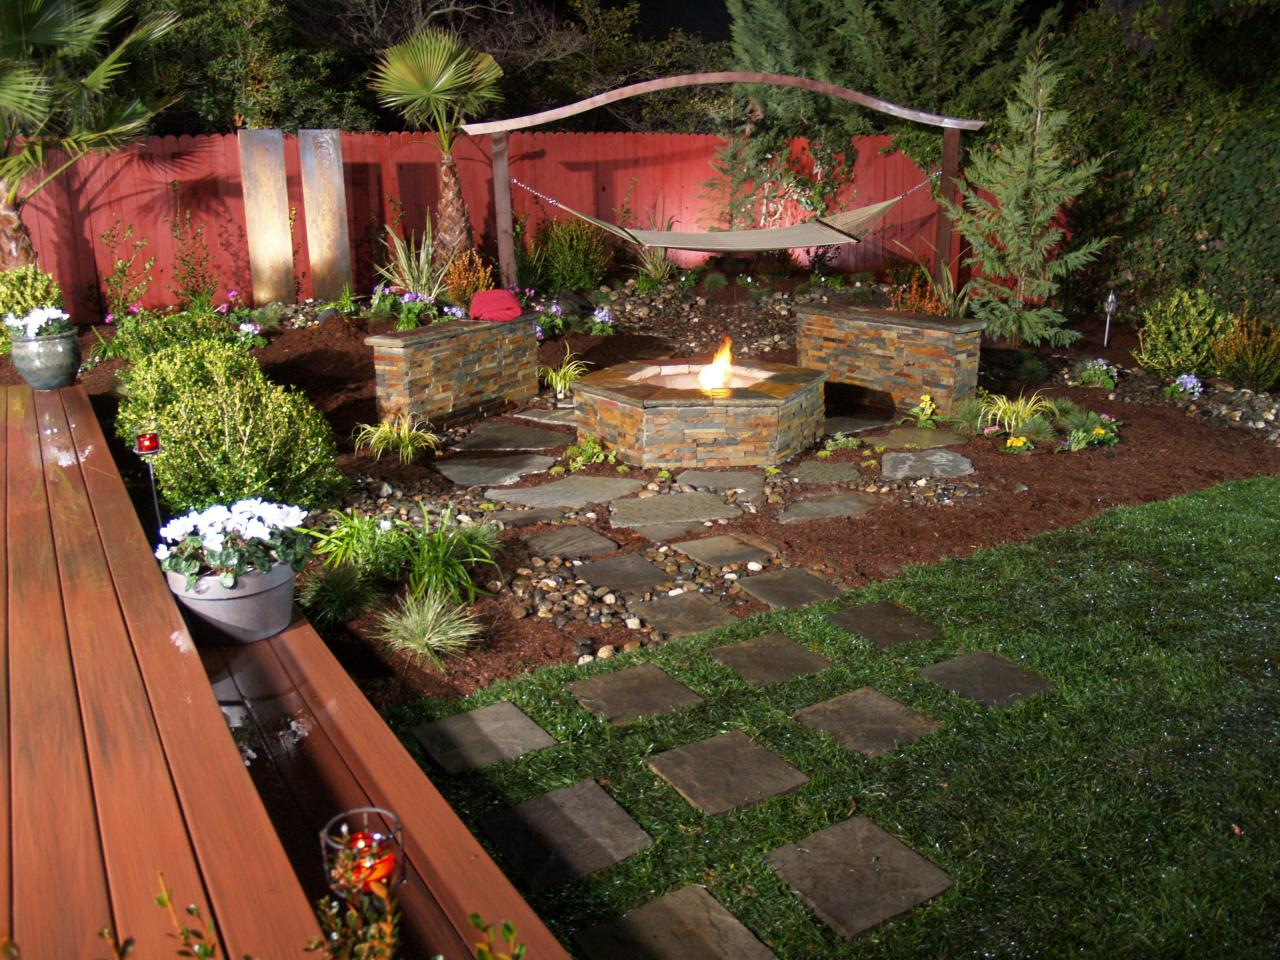 50 Best Outdoor Fire Pit Design Ideas for 2019 on Garden Ideas With Fire Pit id=91878